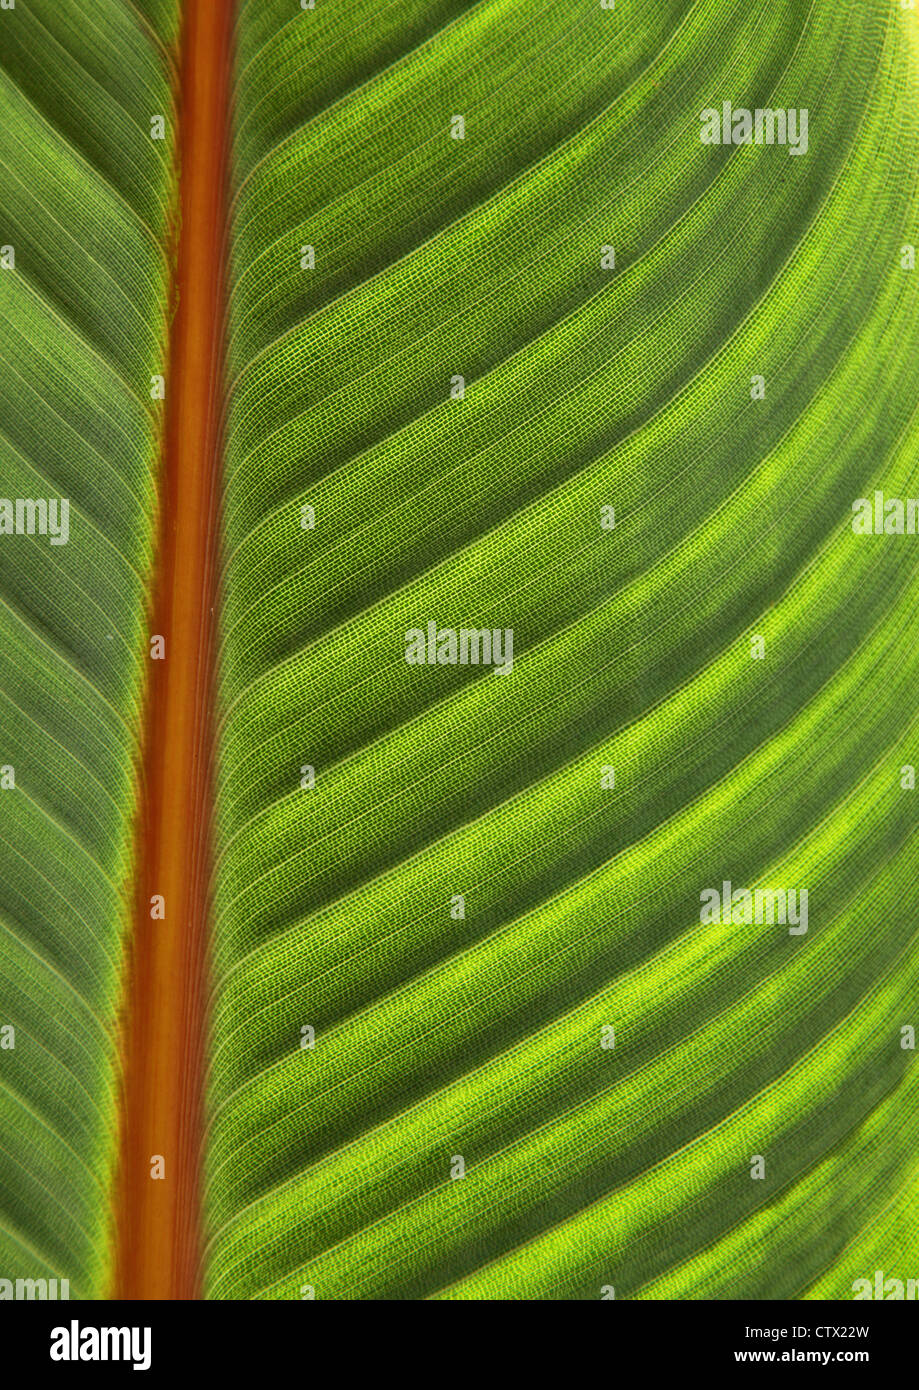 Close up of large green leaf from strelitzia bird of paradise plant - Stock Image